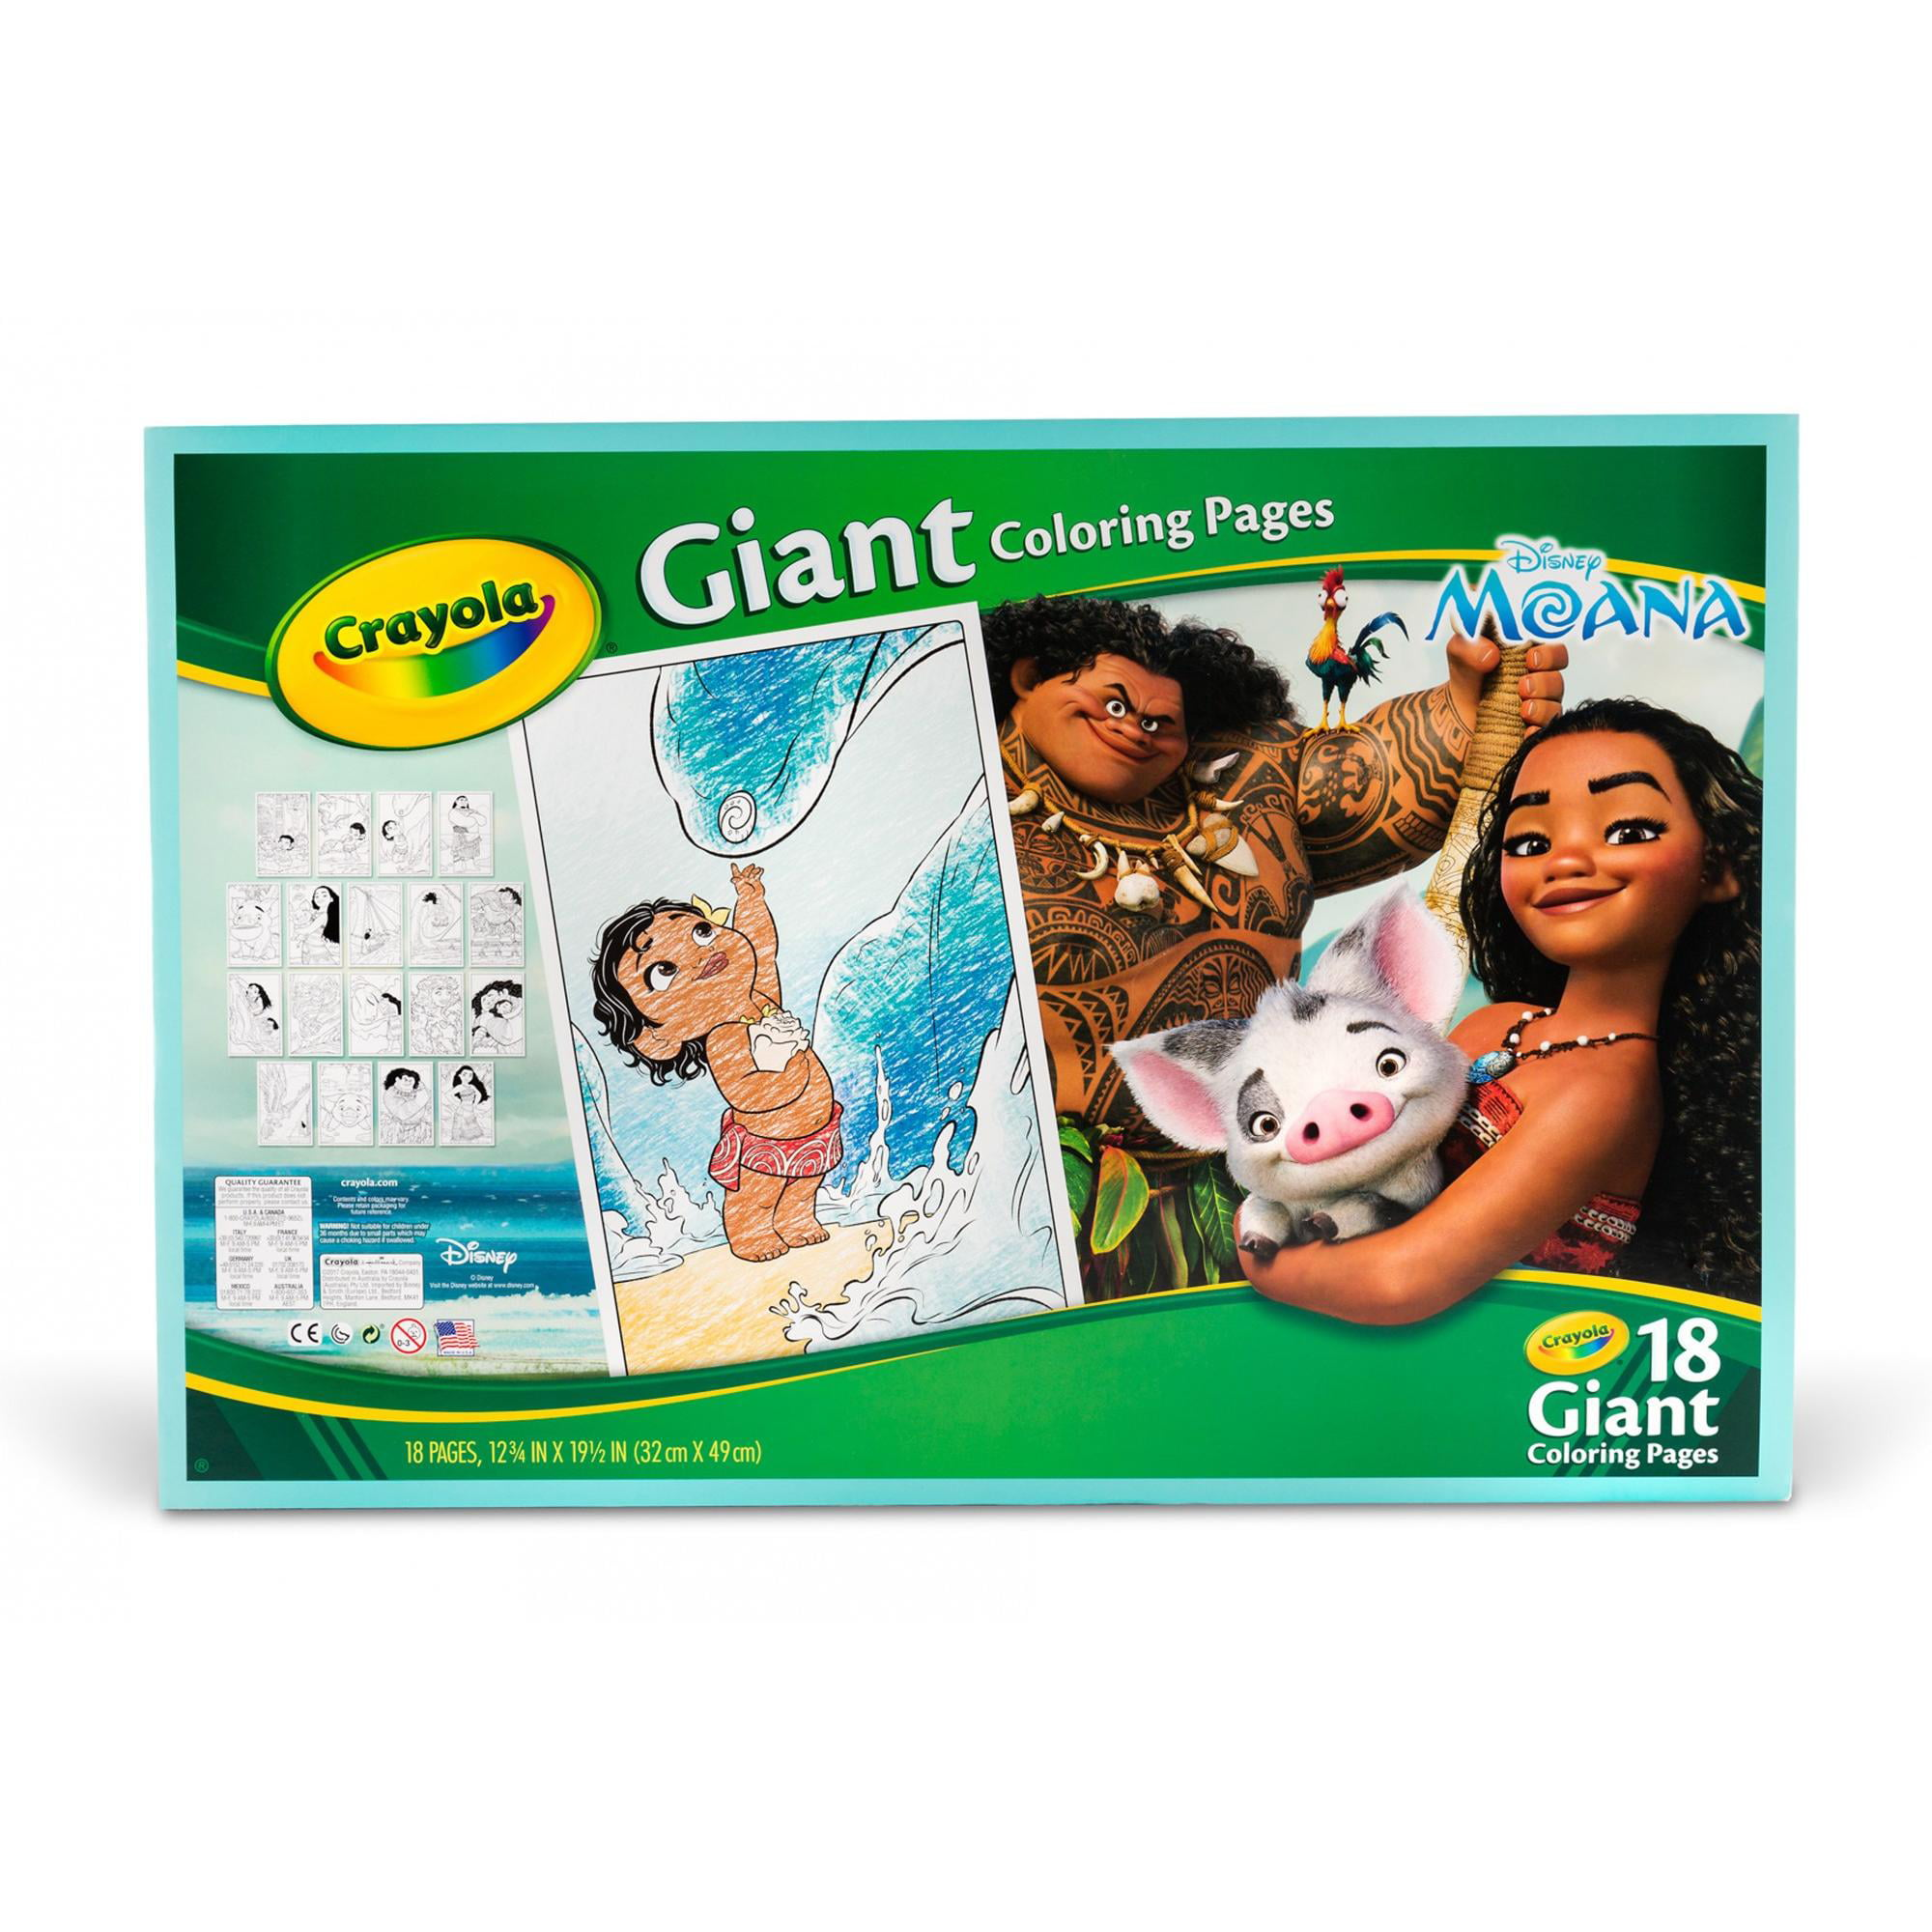 crayola disneys moana 18 giant coloring pages gift for girls walmartcom - Giant Coloring Book